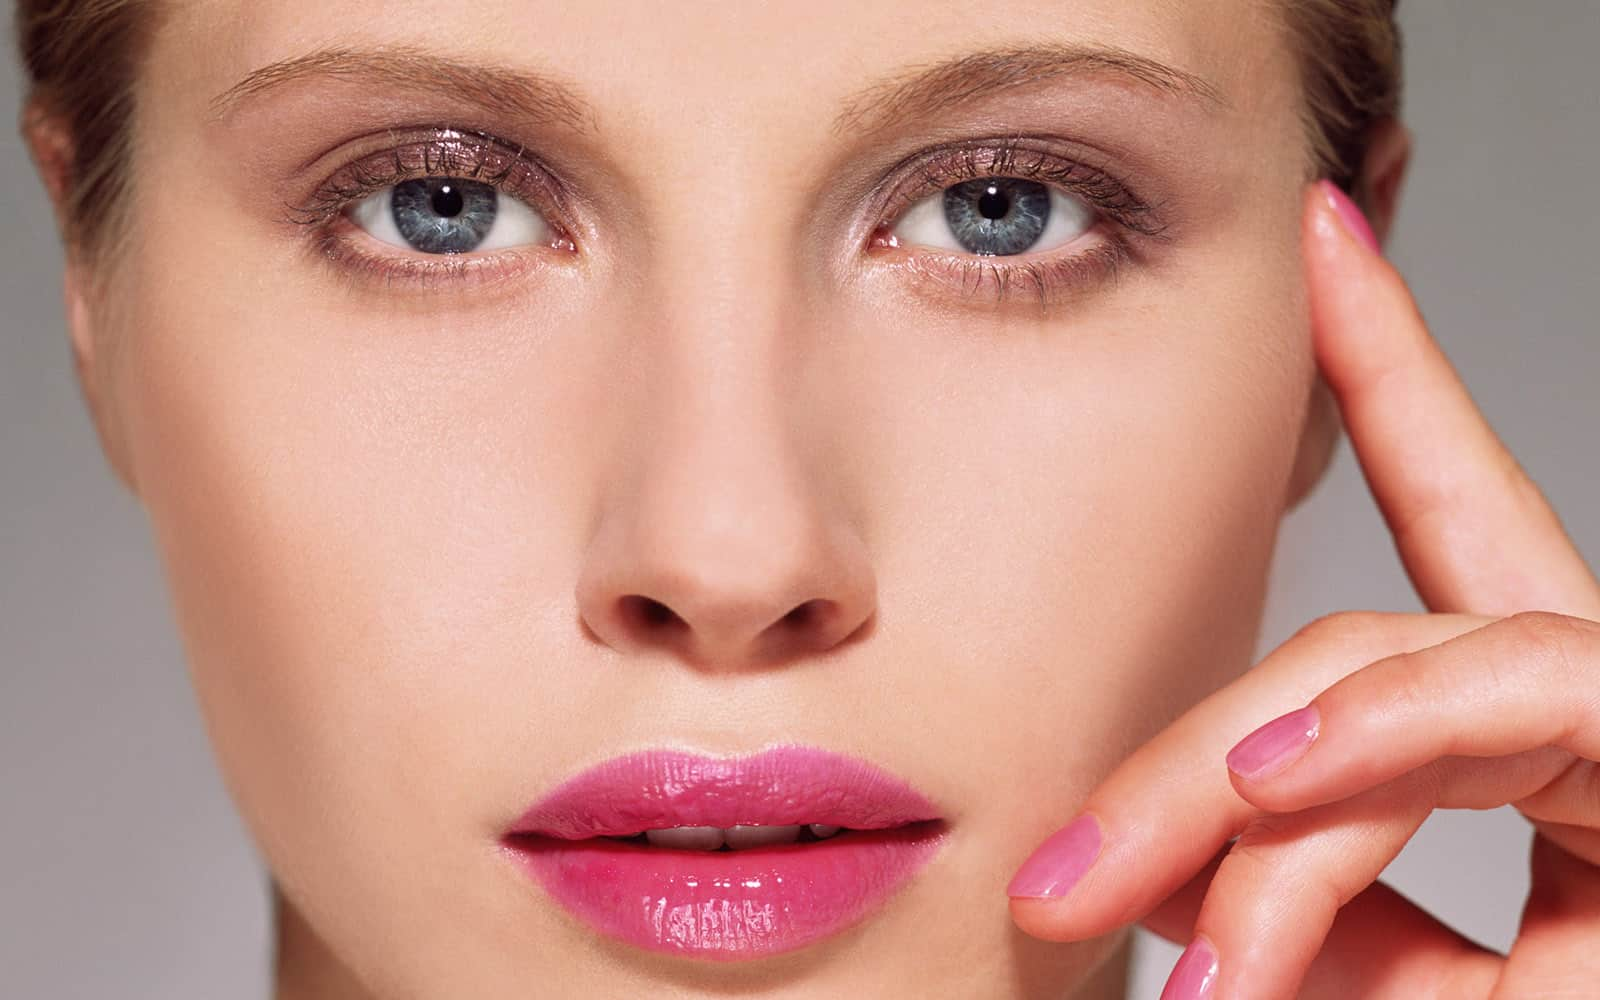 What Is Facelift and Can Fillers Work Just As Well?